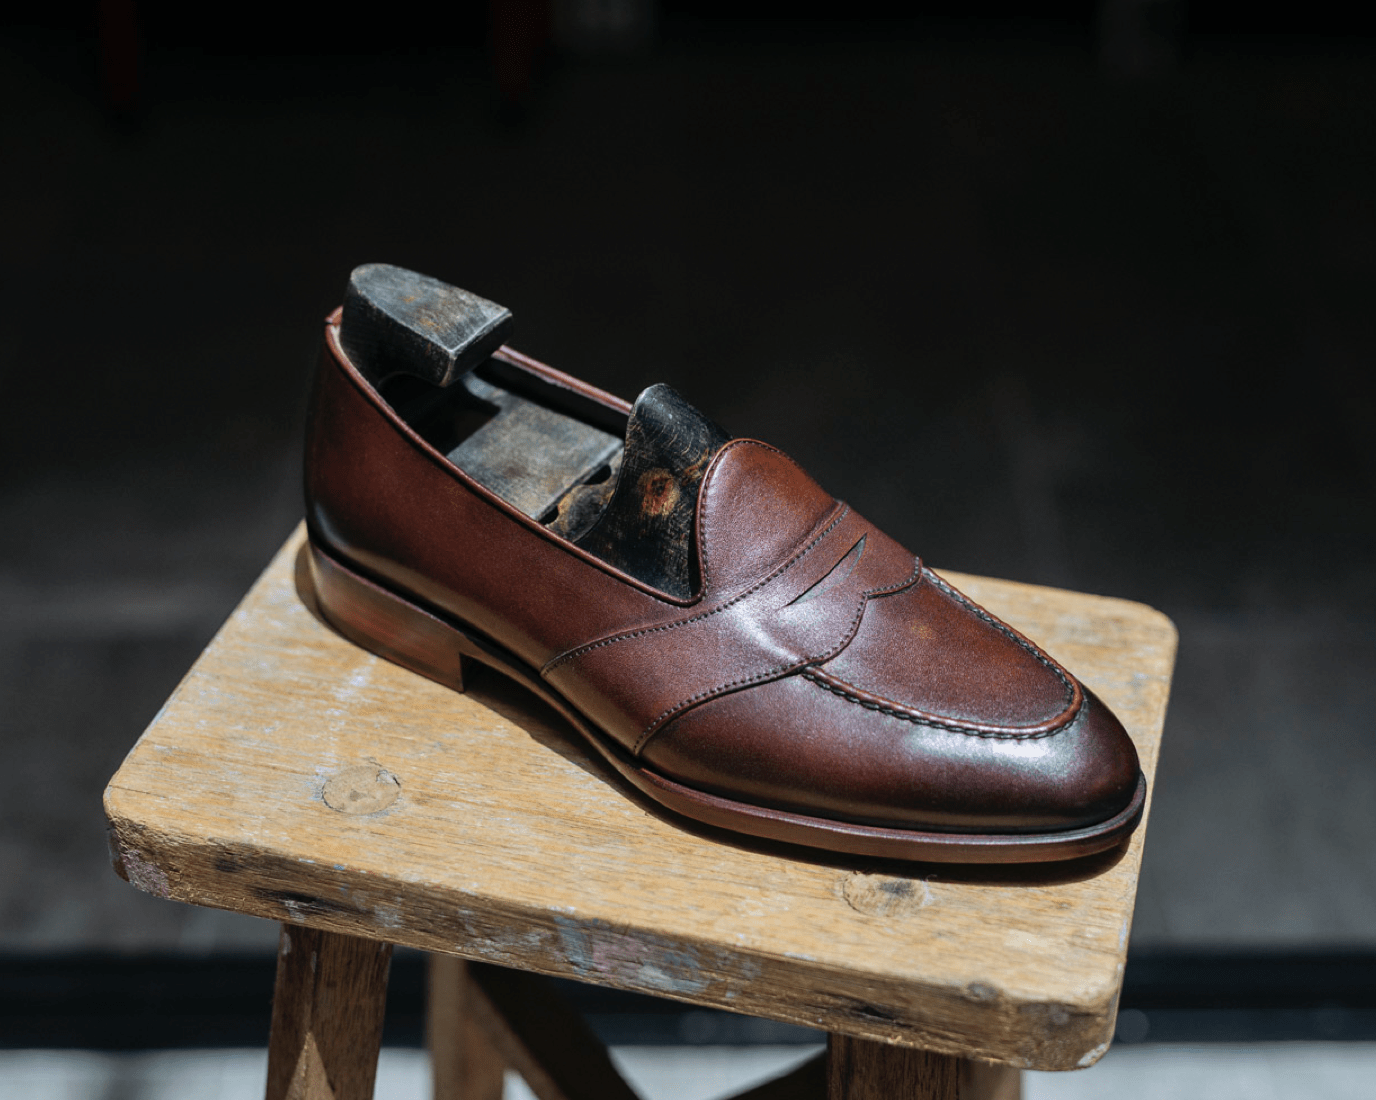 CNES Shoemaker: New Collection